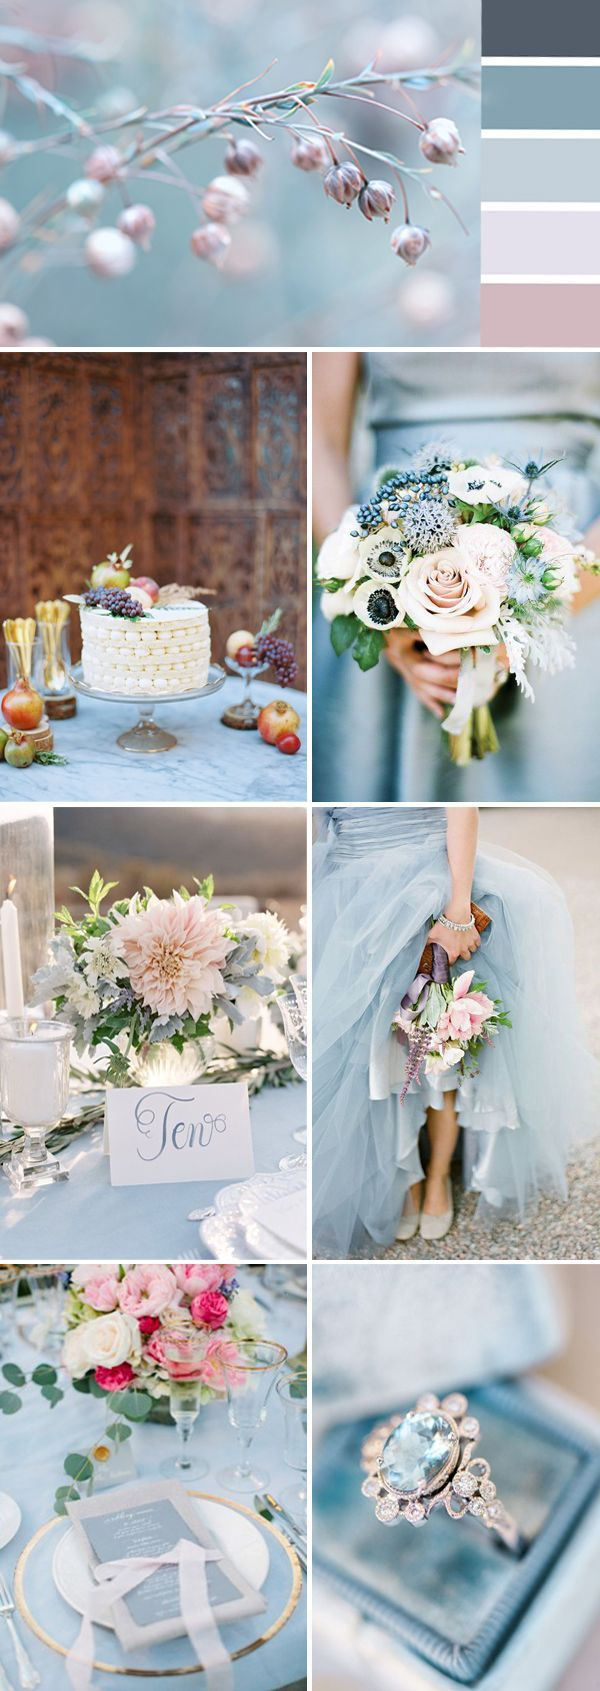 Best 25+ Dusty blue weddings ideas on Pinterest | Dusty ...